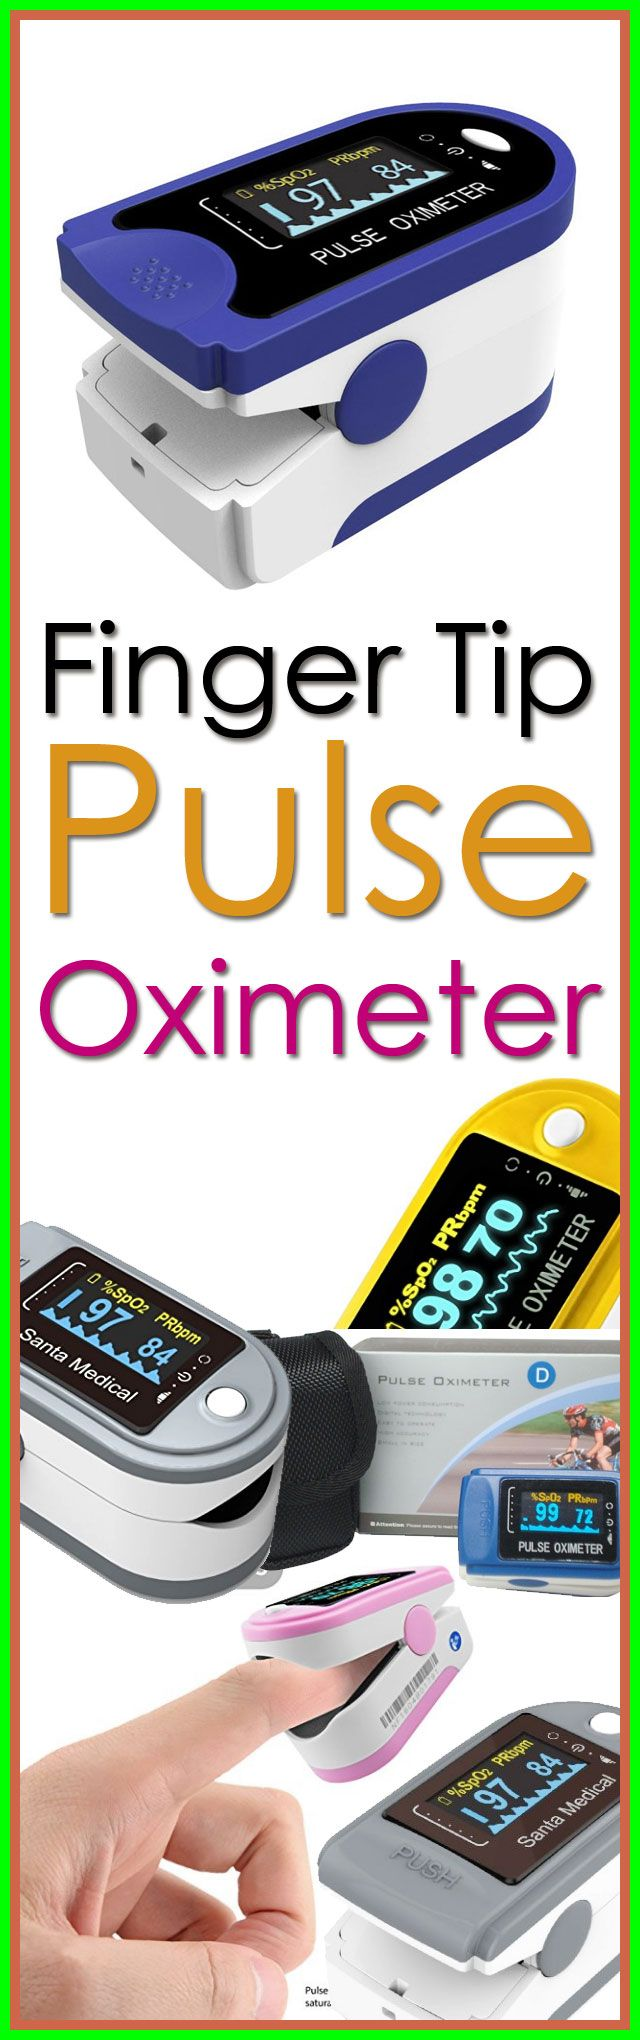 $69.95 Finger Pulse Oximeter is an affordable and accurate way to check pulse rates and blood oxygen saturation levels. Self-adjusting finger clamp plus simple one-button design allows for easy operation. Small portable size makes it easy to handle and carry. Helpful for athletes and pilots to obtain quick and accurate oxygen saturation readings.  Features include an easy to read bright digital LED display, 30+ hours of continuous monitoring on one set of batteries.